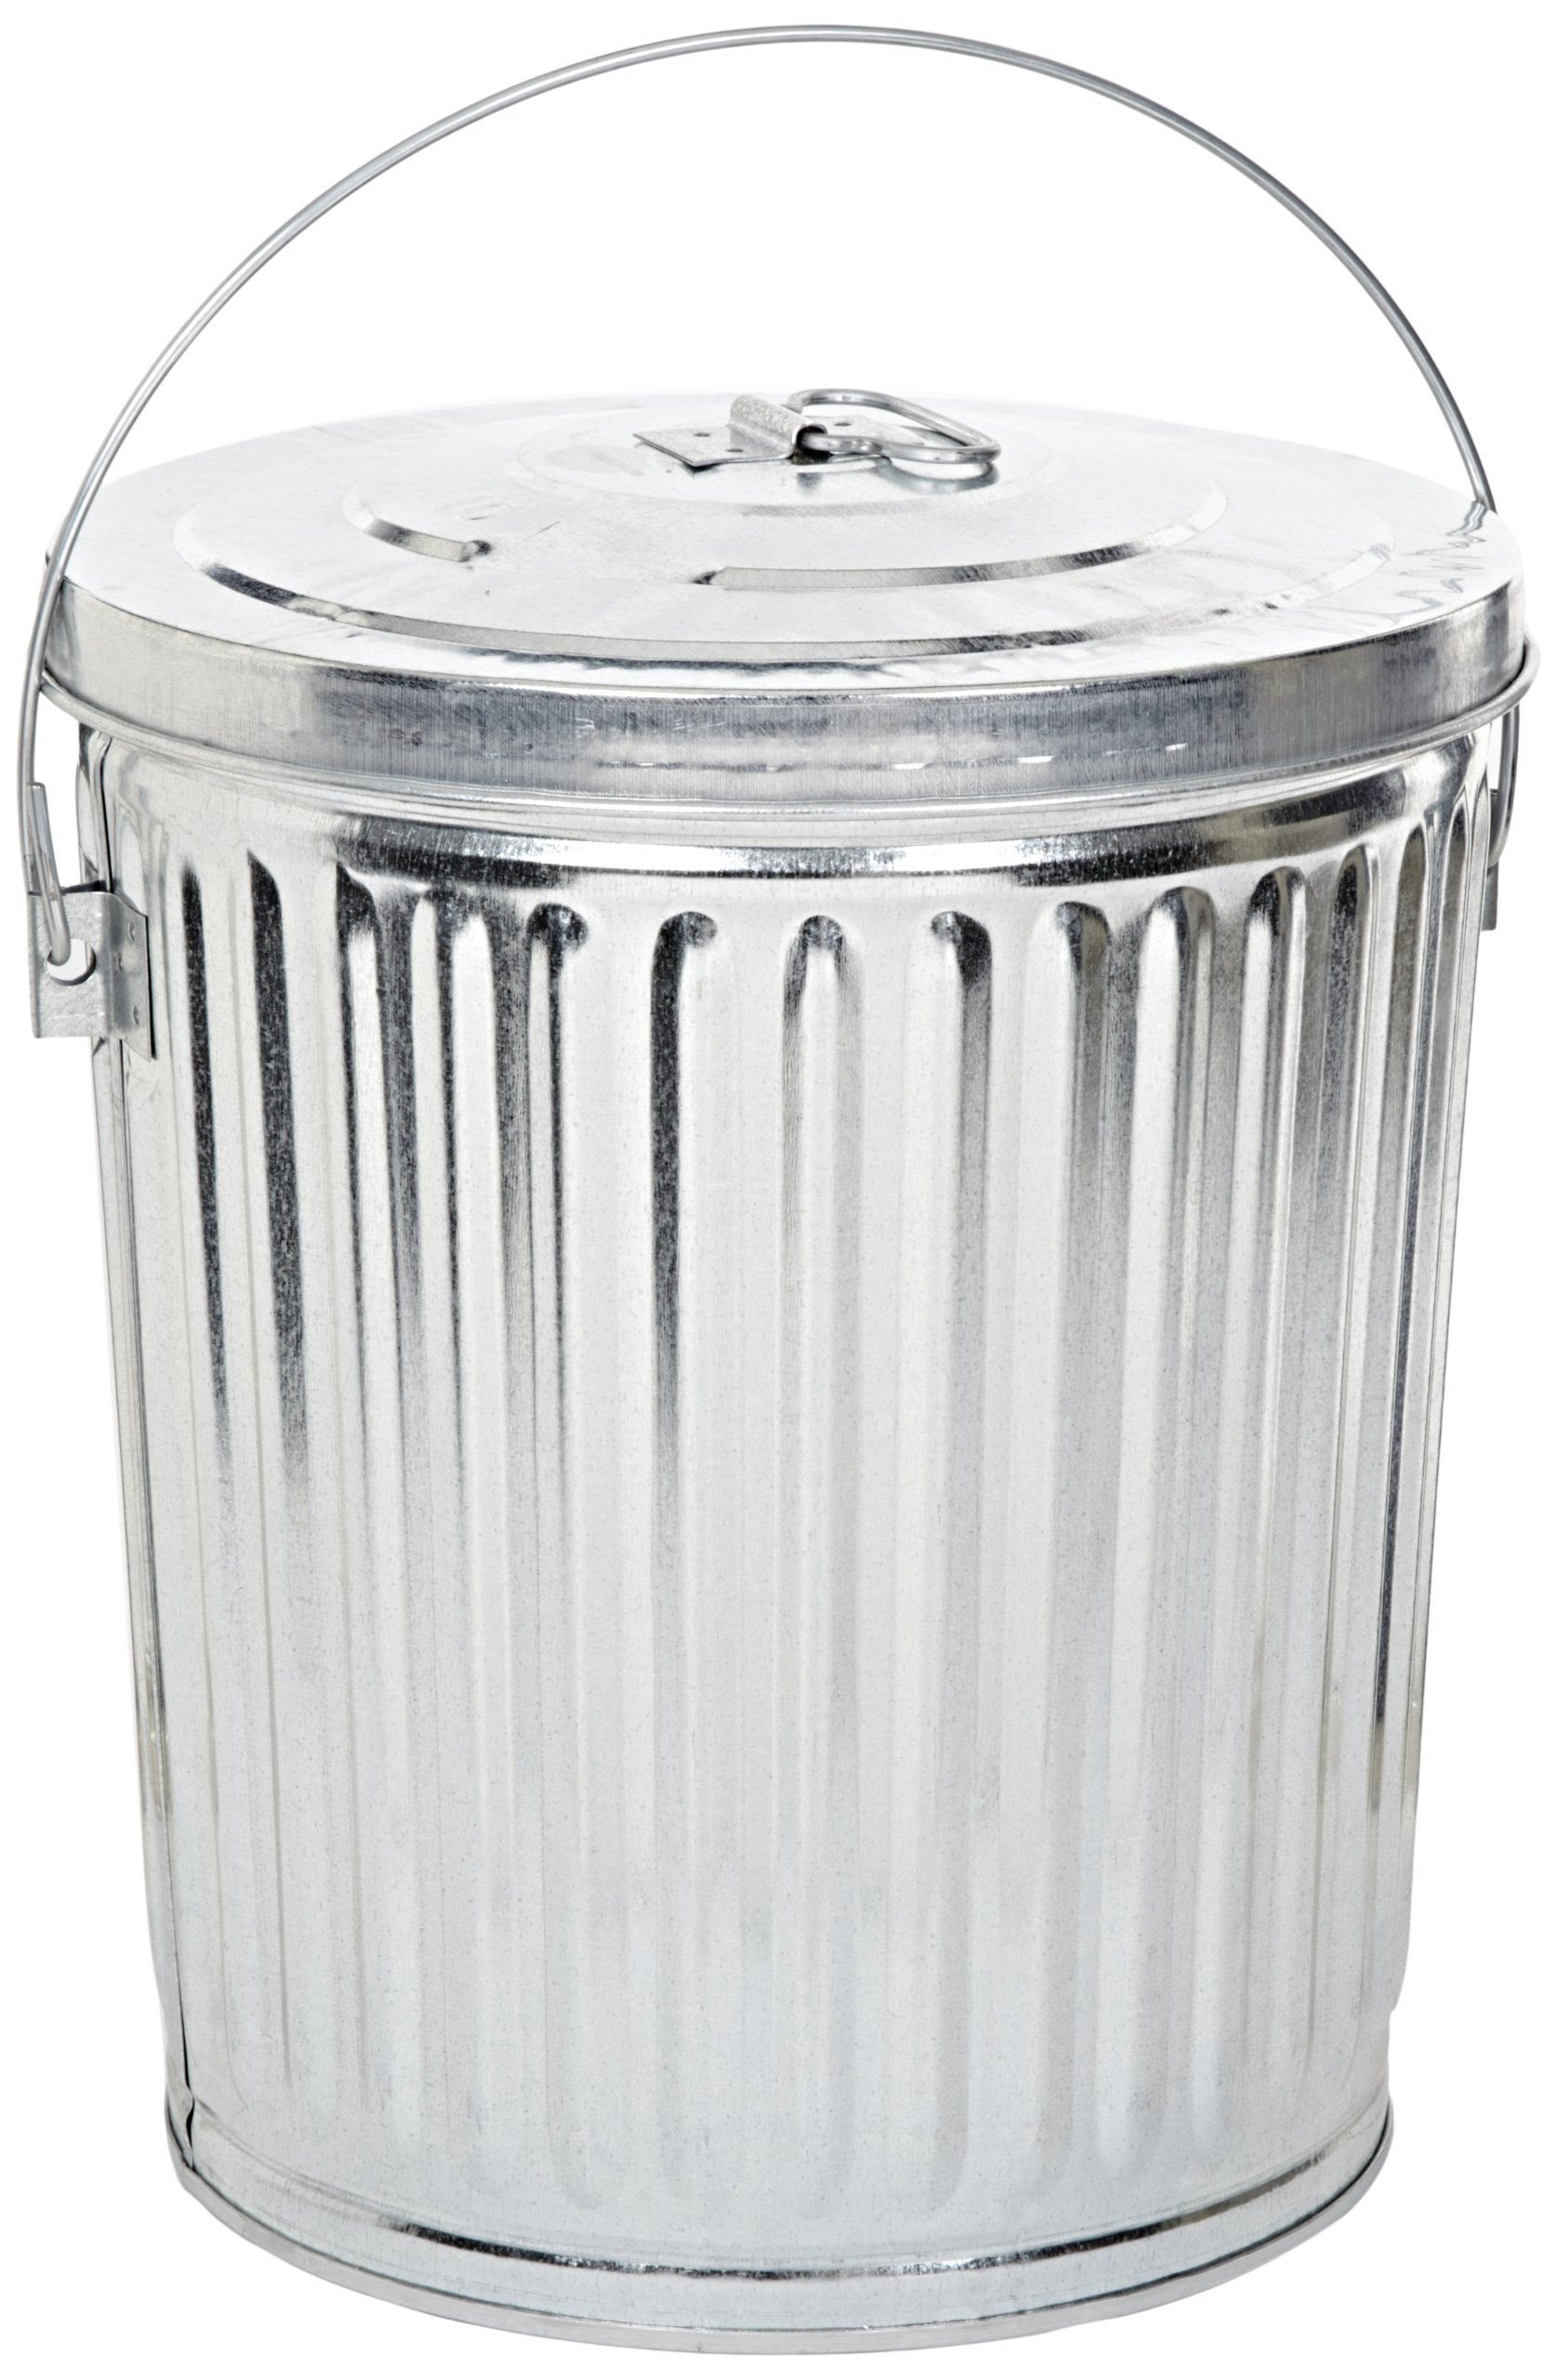 Witt Industries 10GPCL Galvanized Steel 10-Gallon Light Duty Waste Pail and Lid, Round,  16'' Diameter x 17-1/4'' Height, Silver